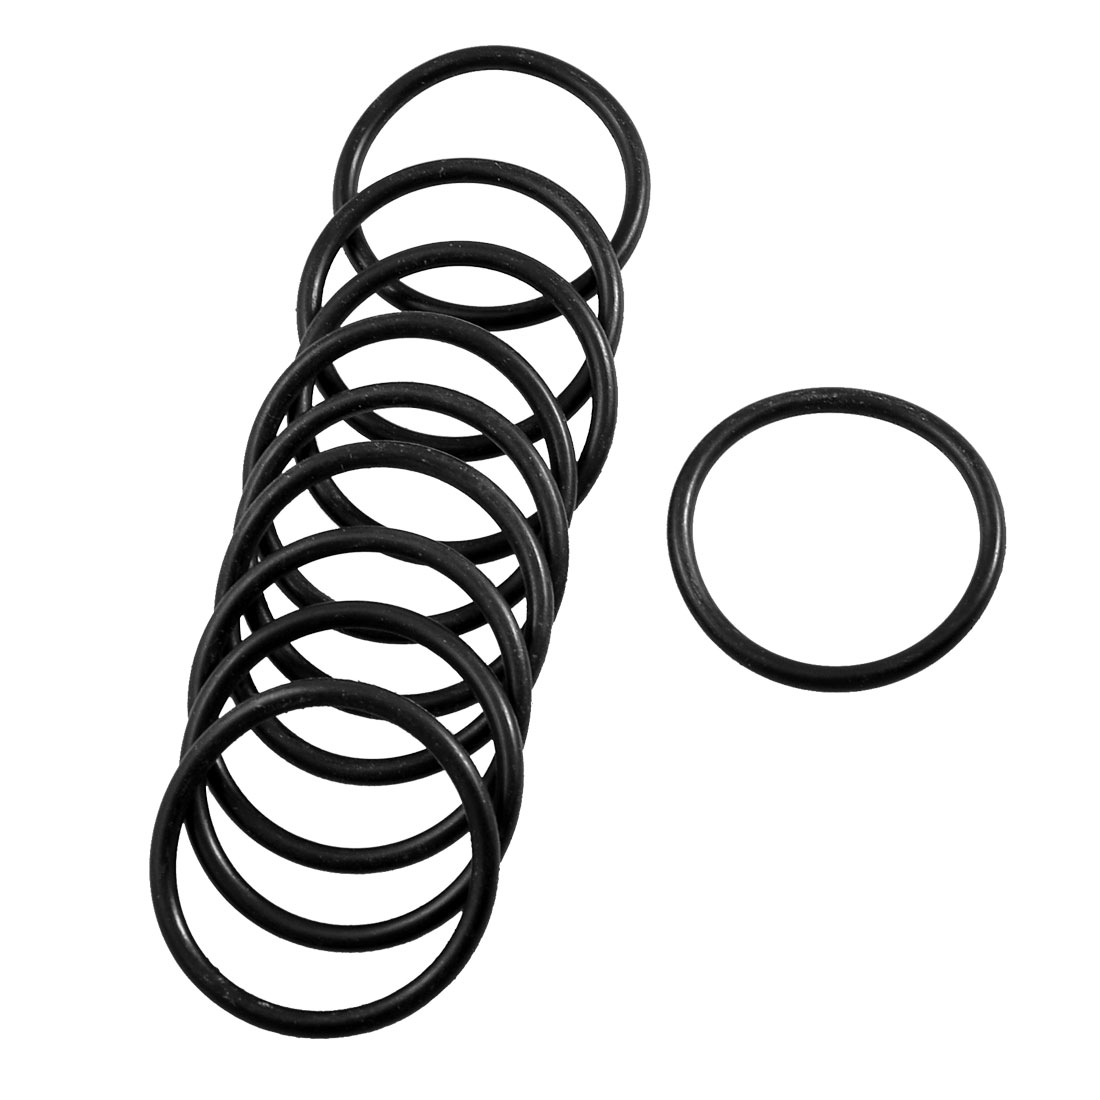 10 Pcs Mechanical Black Rubber O Ring Oil Seal Gaskets 39mm x 32mm x 3.1mm